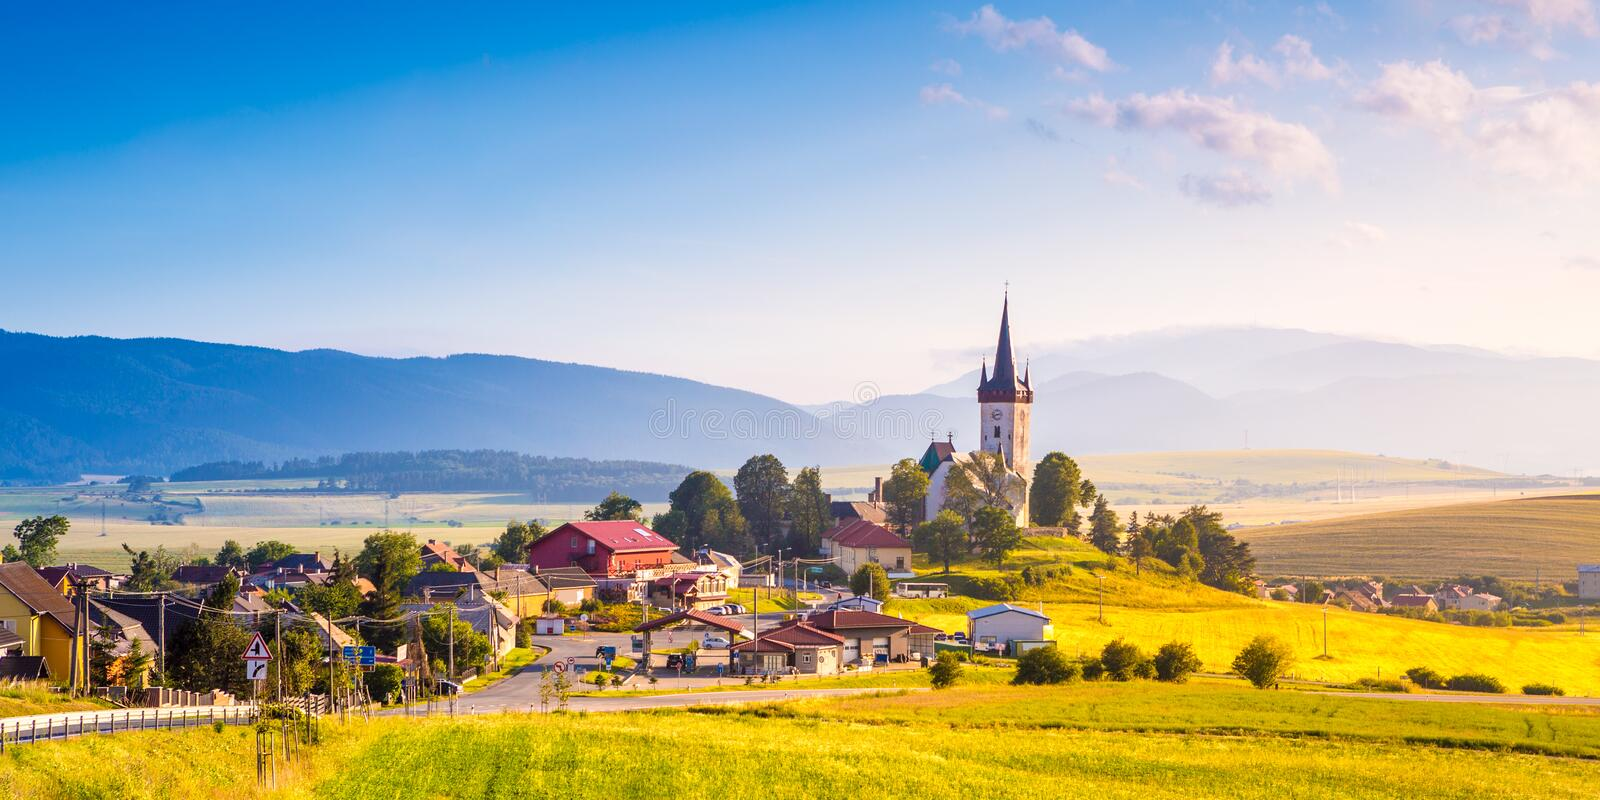 Beautiful landscape of valley in Slovakia mountains, small houses in village, rural scene. Spissky Stvrtok, Slovakia stock photo